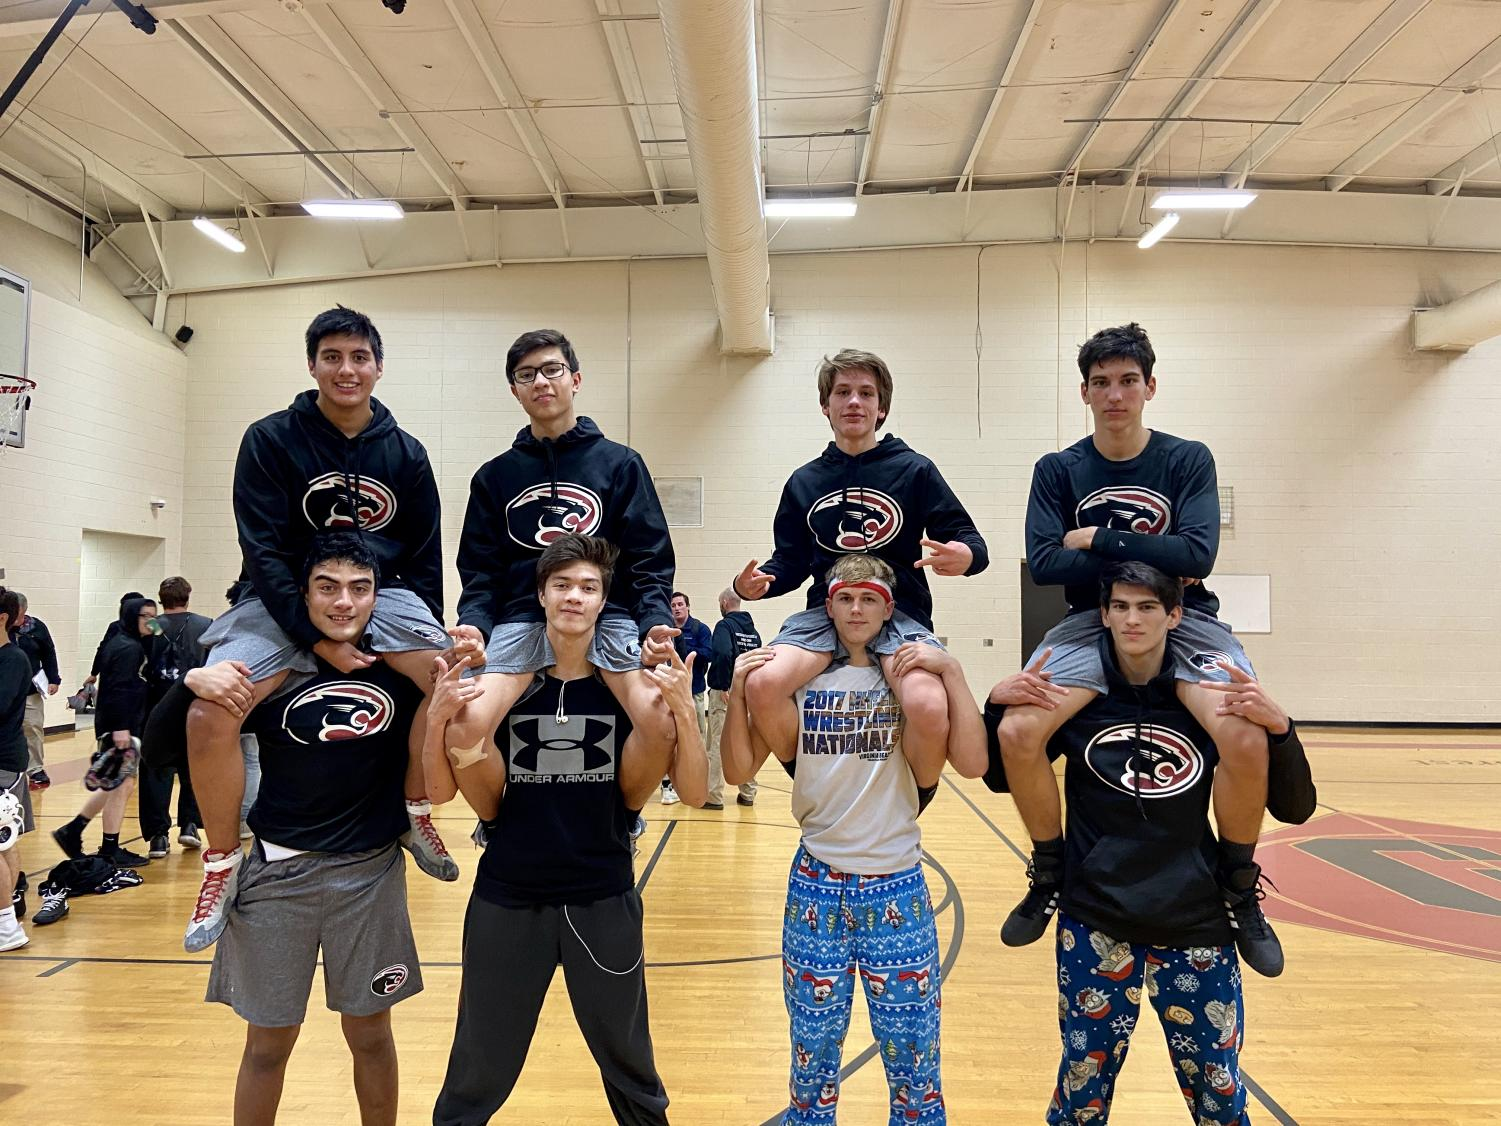 Left to right: Marlon Morales, Brandon Morales, Christian Gilbert, Michael Gilbert, Jayson Jacoby, Brandon Jacoby, Zachary Preciado, and Nicholas Preciado pose after wrestling Myrtle Beach High School. Not pictured: Dominic Gilbert